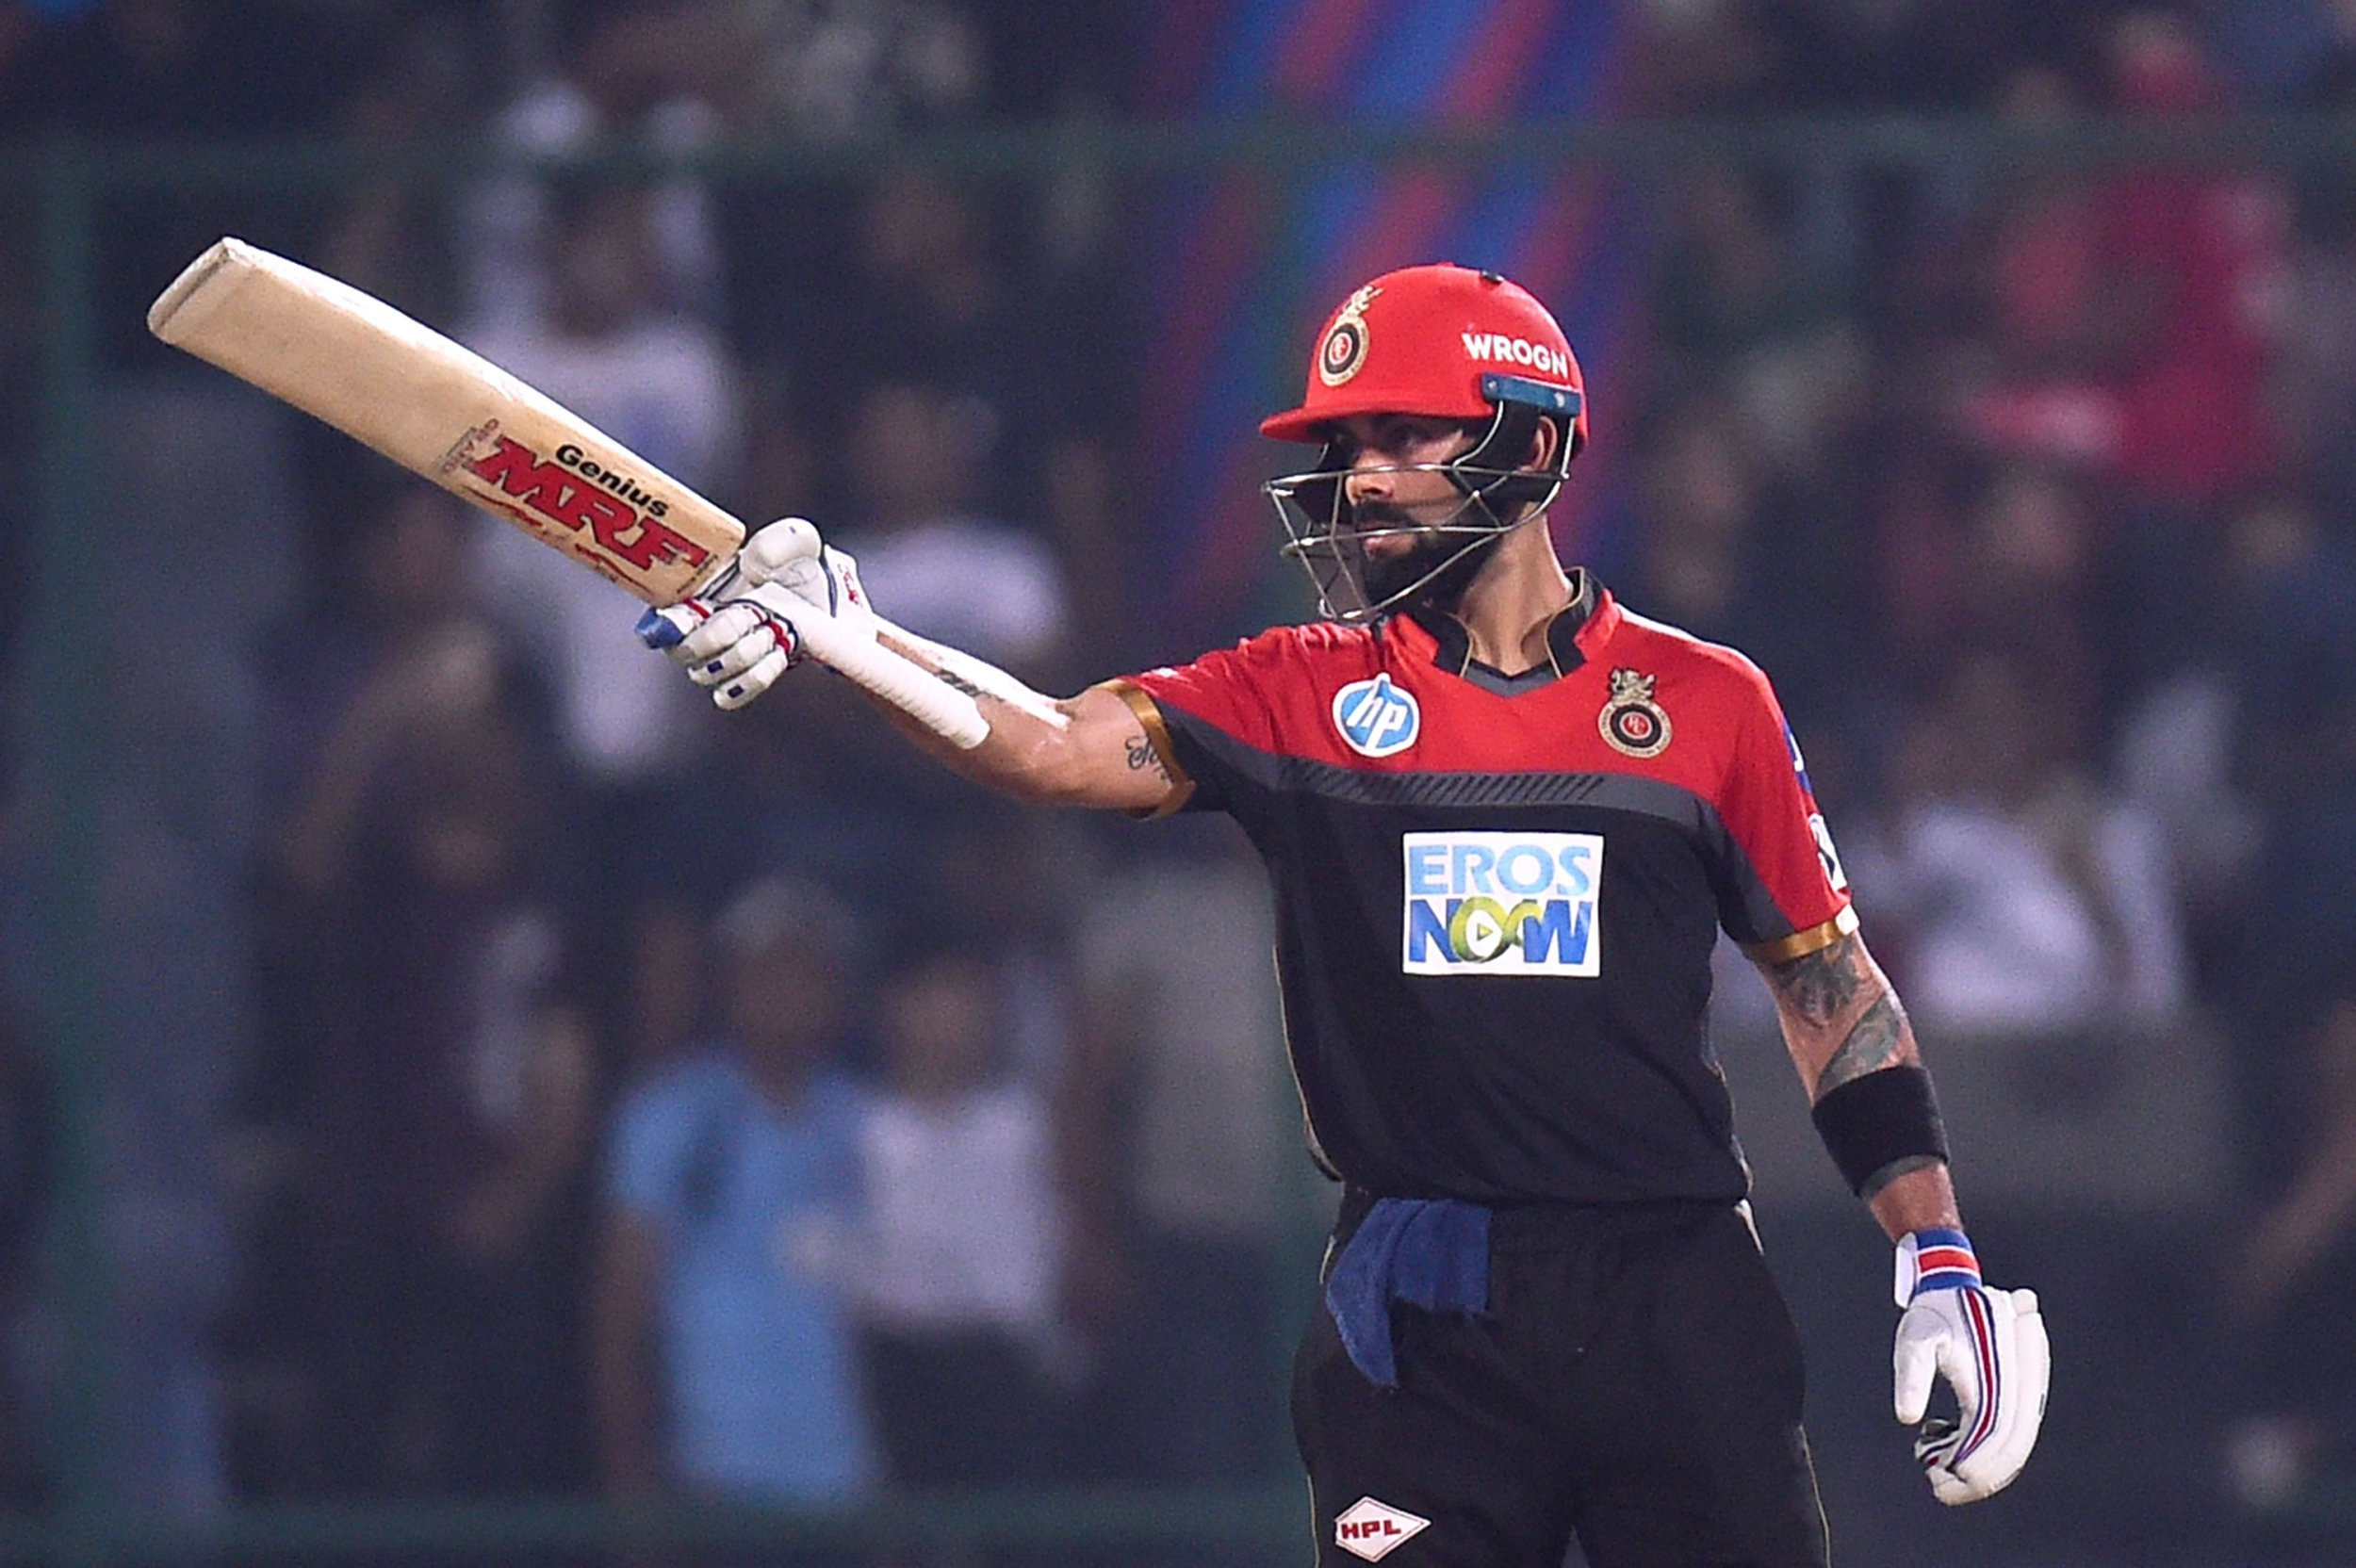 Rajasthan Royals v Royal Challengers Bangalore IPL betting preview: Jos Buttler's replacement can torment Virat Kohli